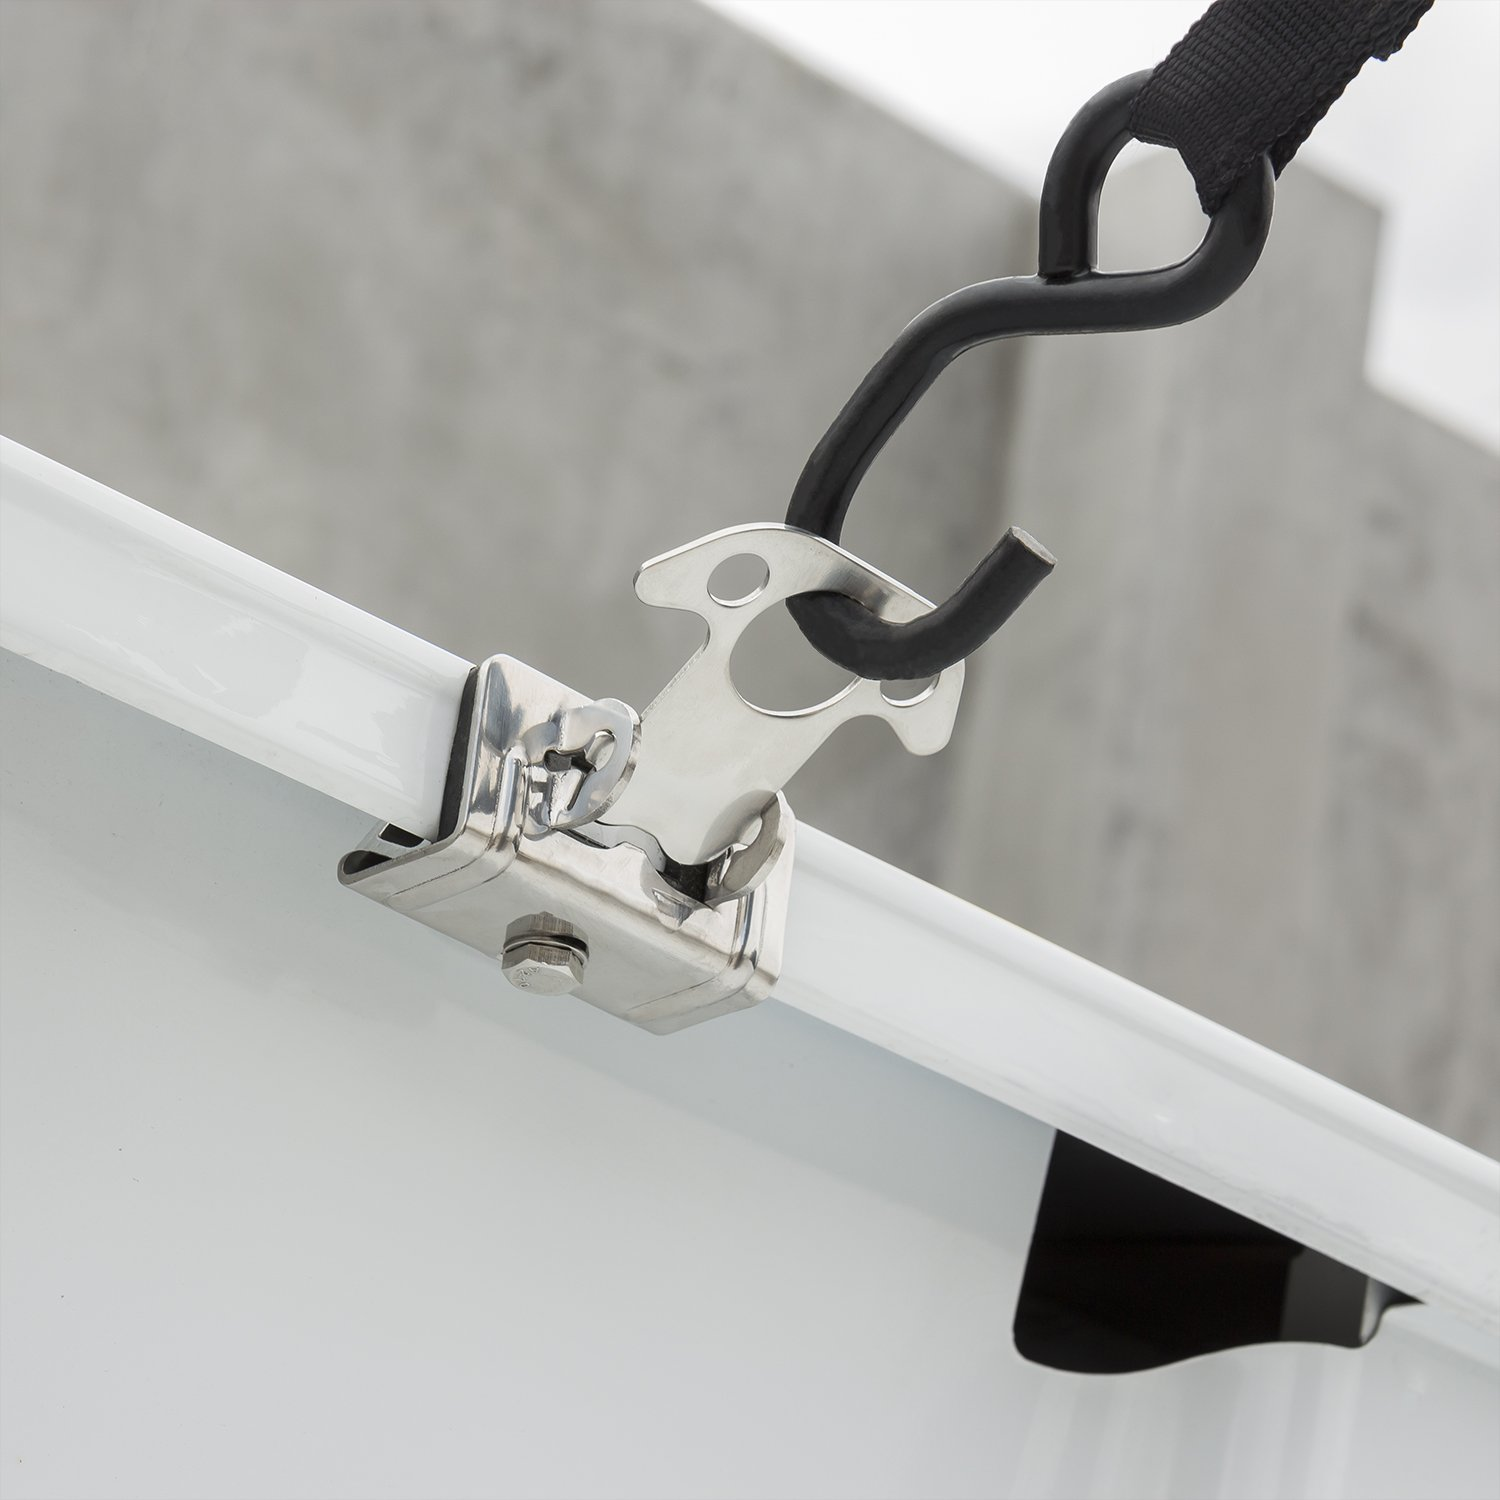 Bully WTD-823S Bed Rail Clamp Tie Down Single